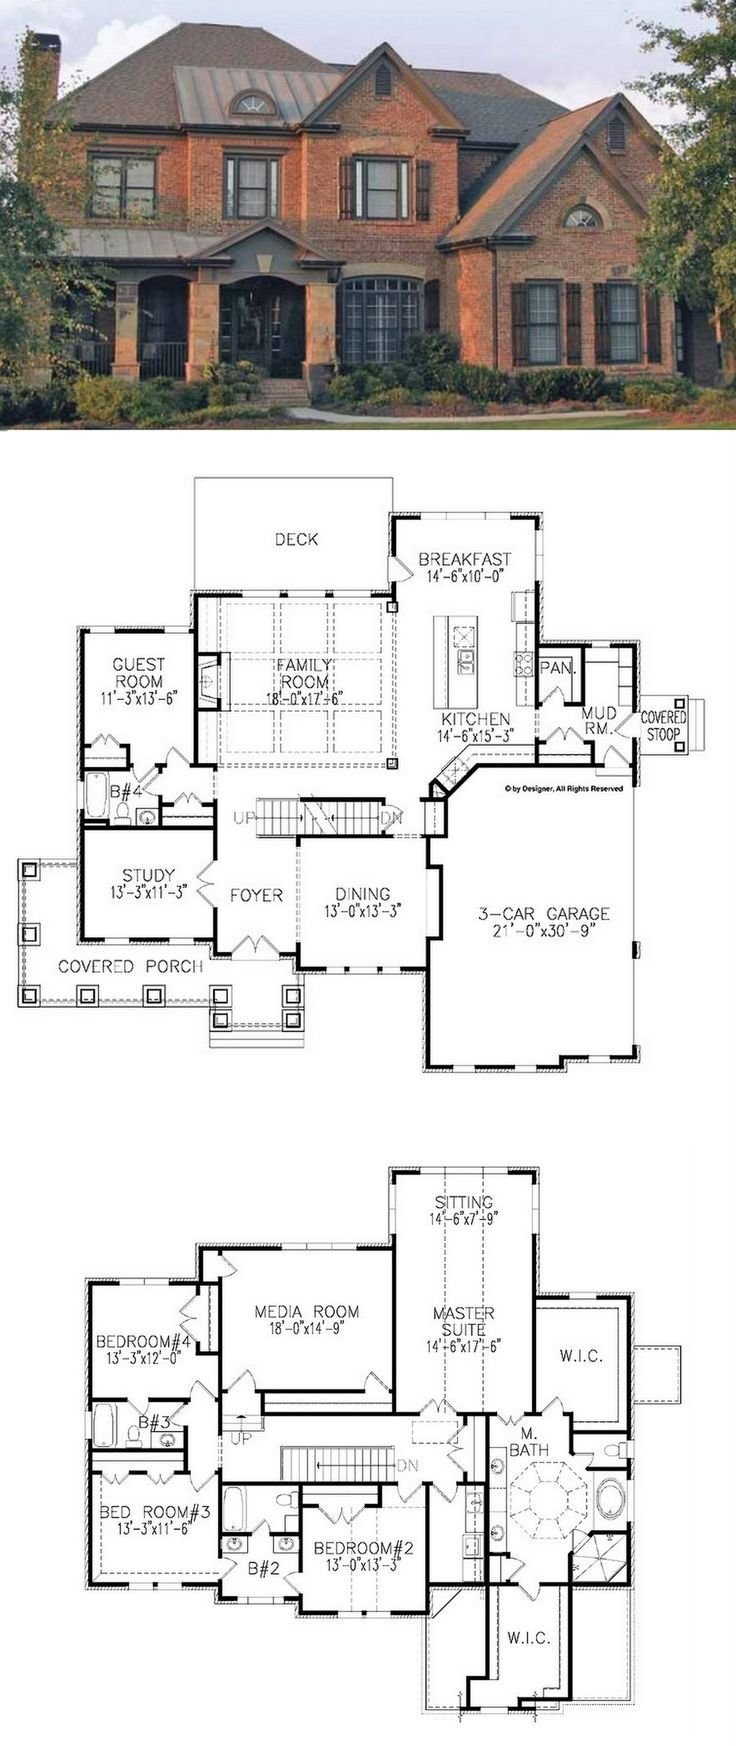 Best Pin By Martha Kenworthy On Home Ideas Floor Plans Traditional House Plans House Plans With Pictures